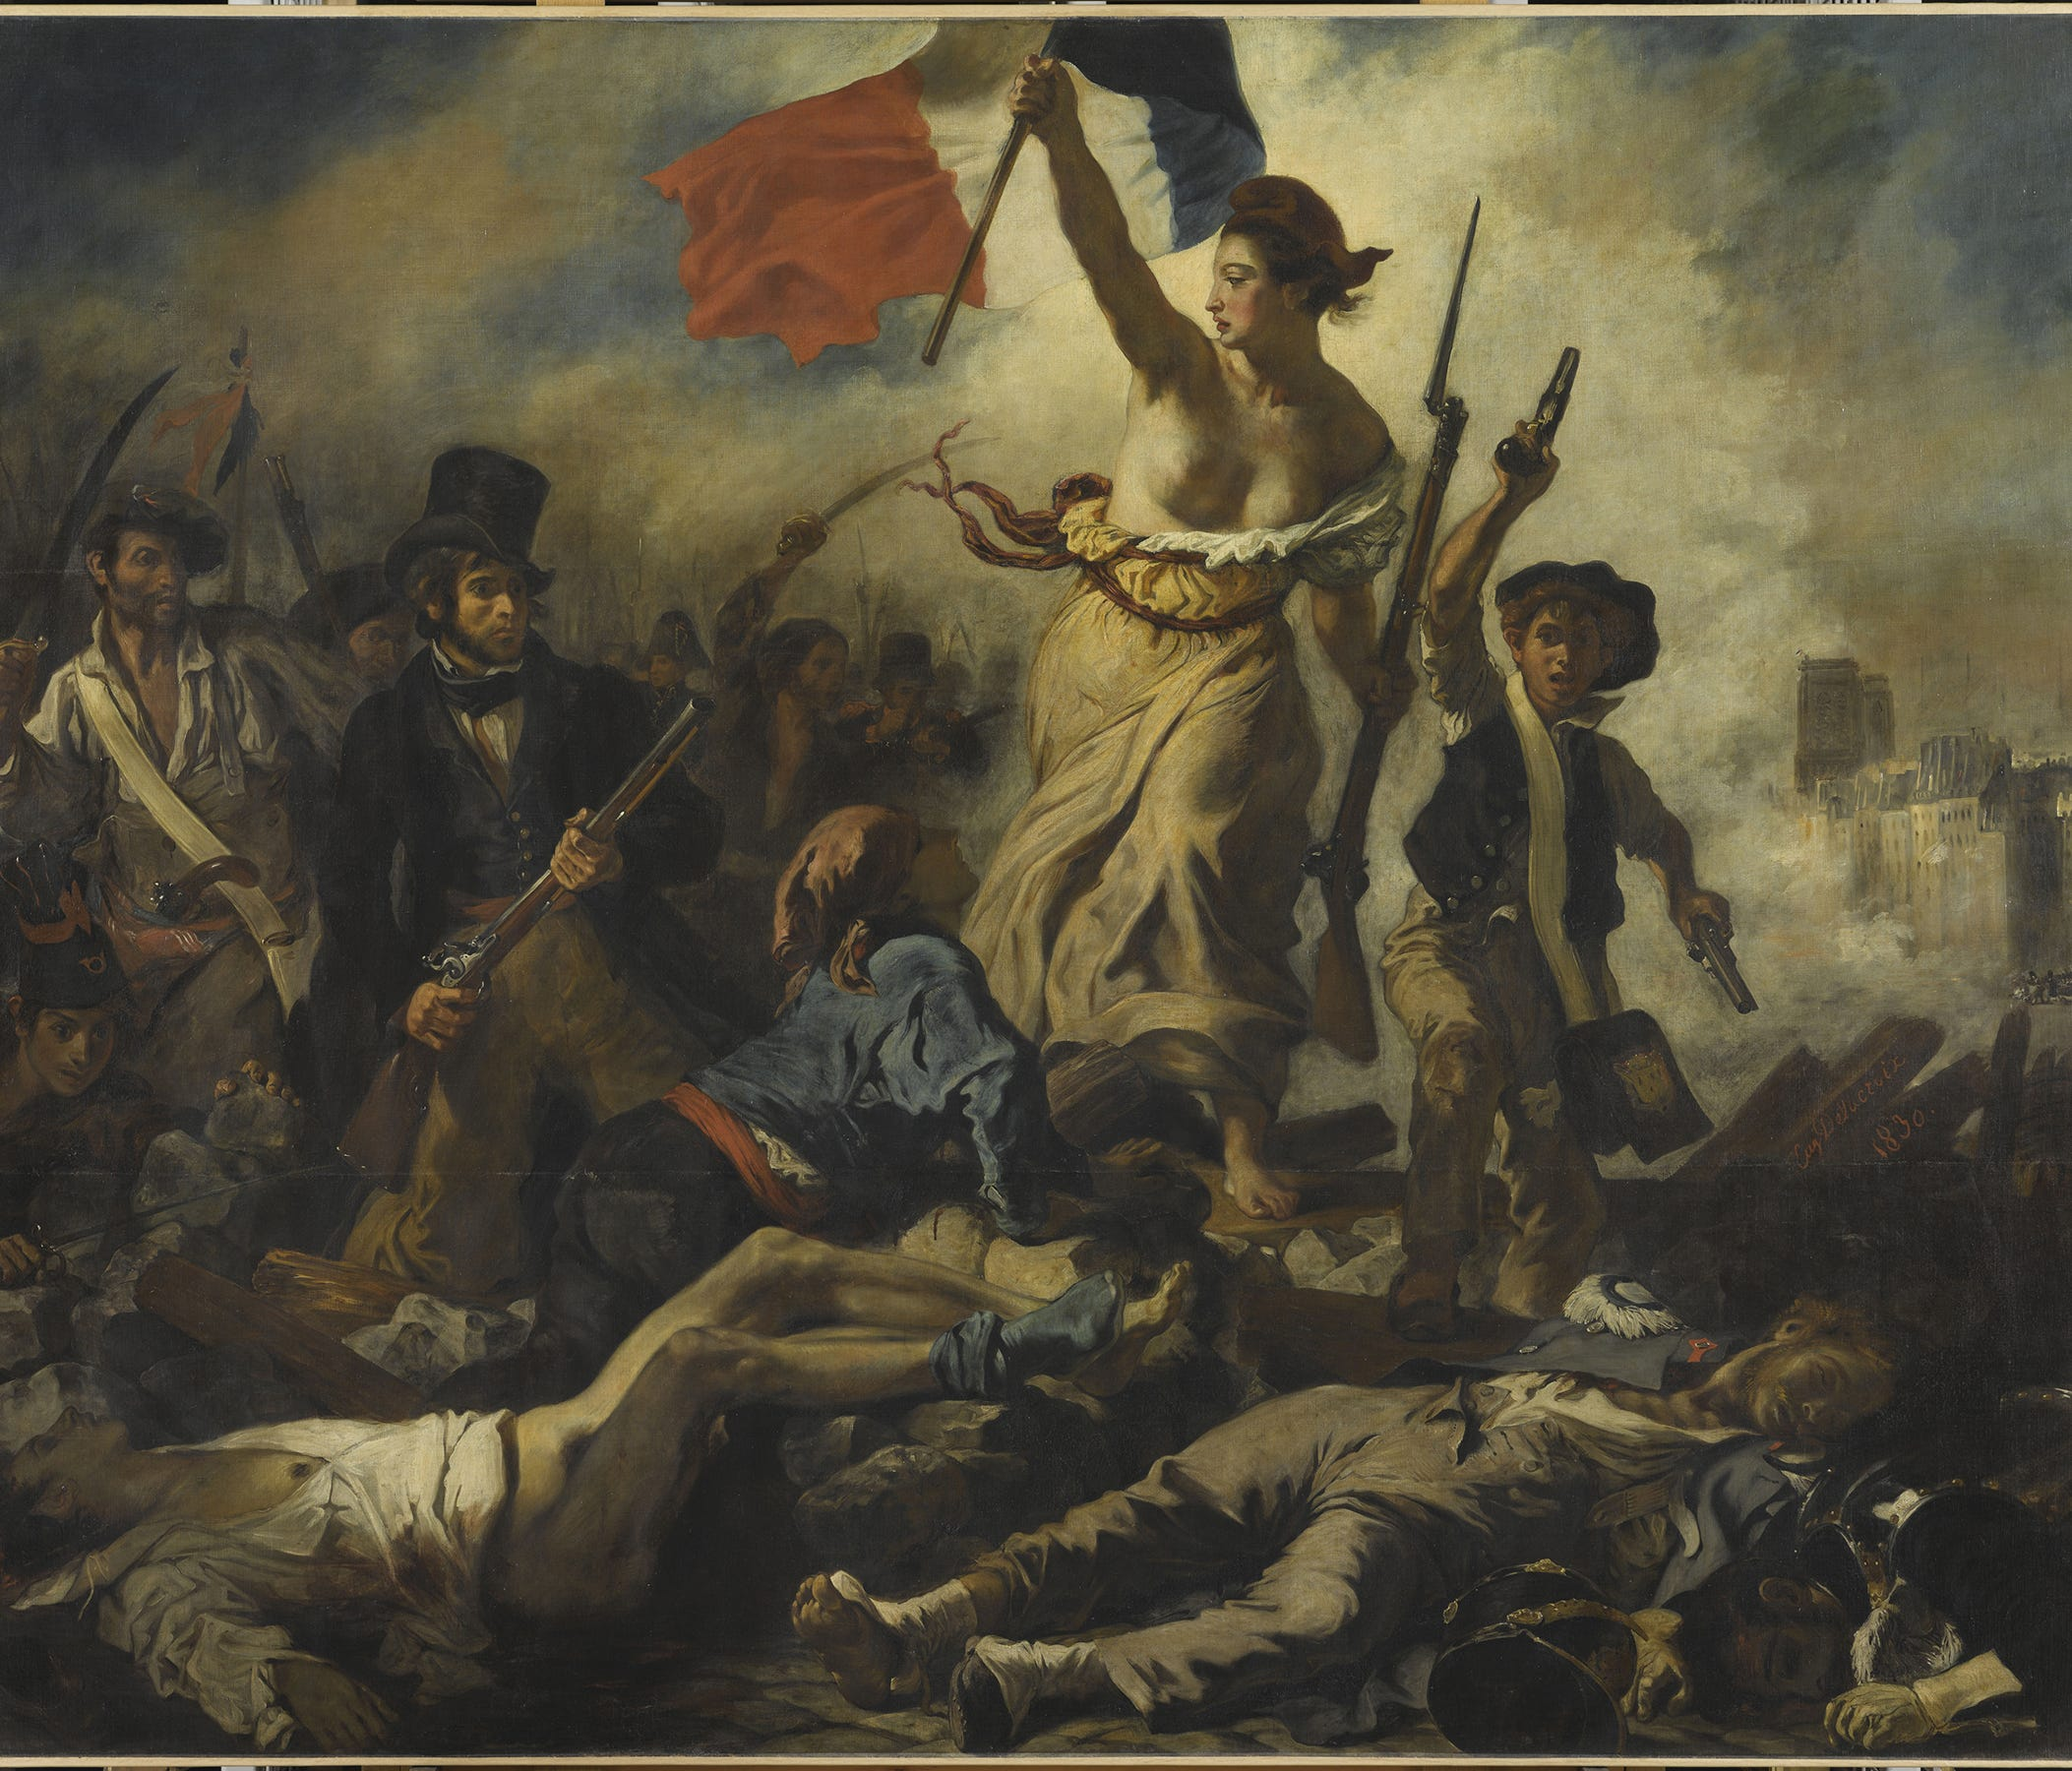 Though Eugène Delacroix is considered one of the giants of French painting, the last full retrospective on his work in Paris was held six decades ago (in 1963, the centenary year of his death). The Louvre has joined forces with the Metropolitan Museu